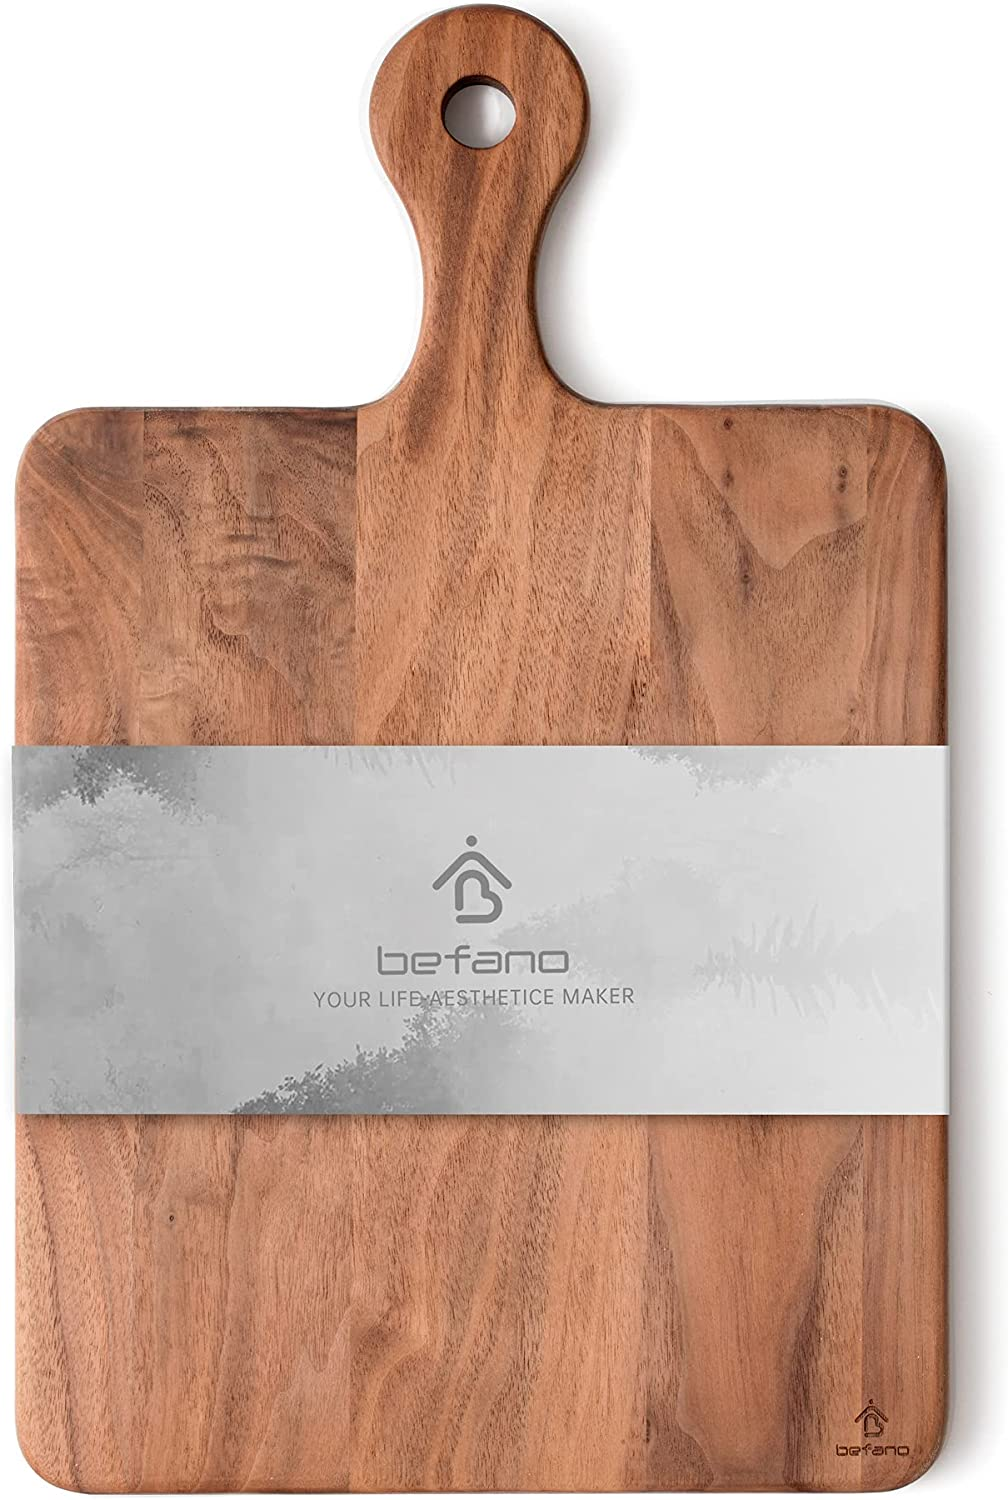 Befano Black Walnut Square Cutting Board for Kitchen with Handle, Serving Tray, Bread Tray, Pizza Plate, Crackers Platter, Chopping Board for Meat, Bread, Gift Box Included(10x16x0.8Inches)